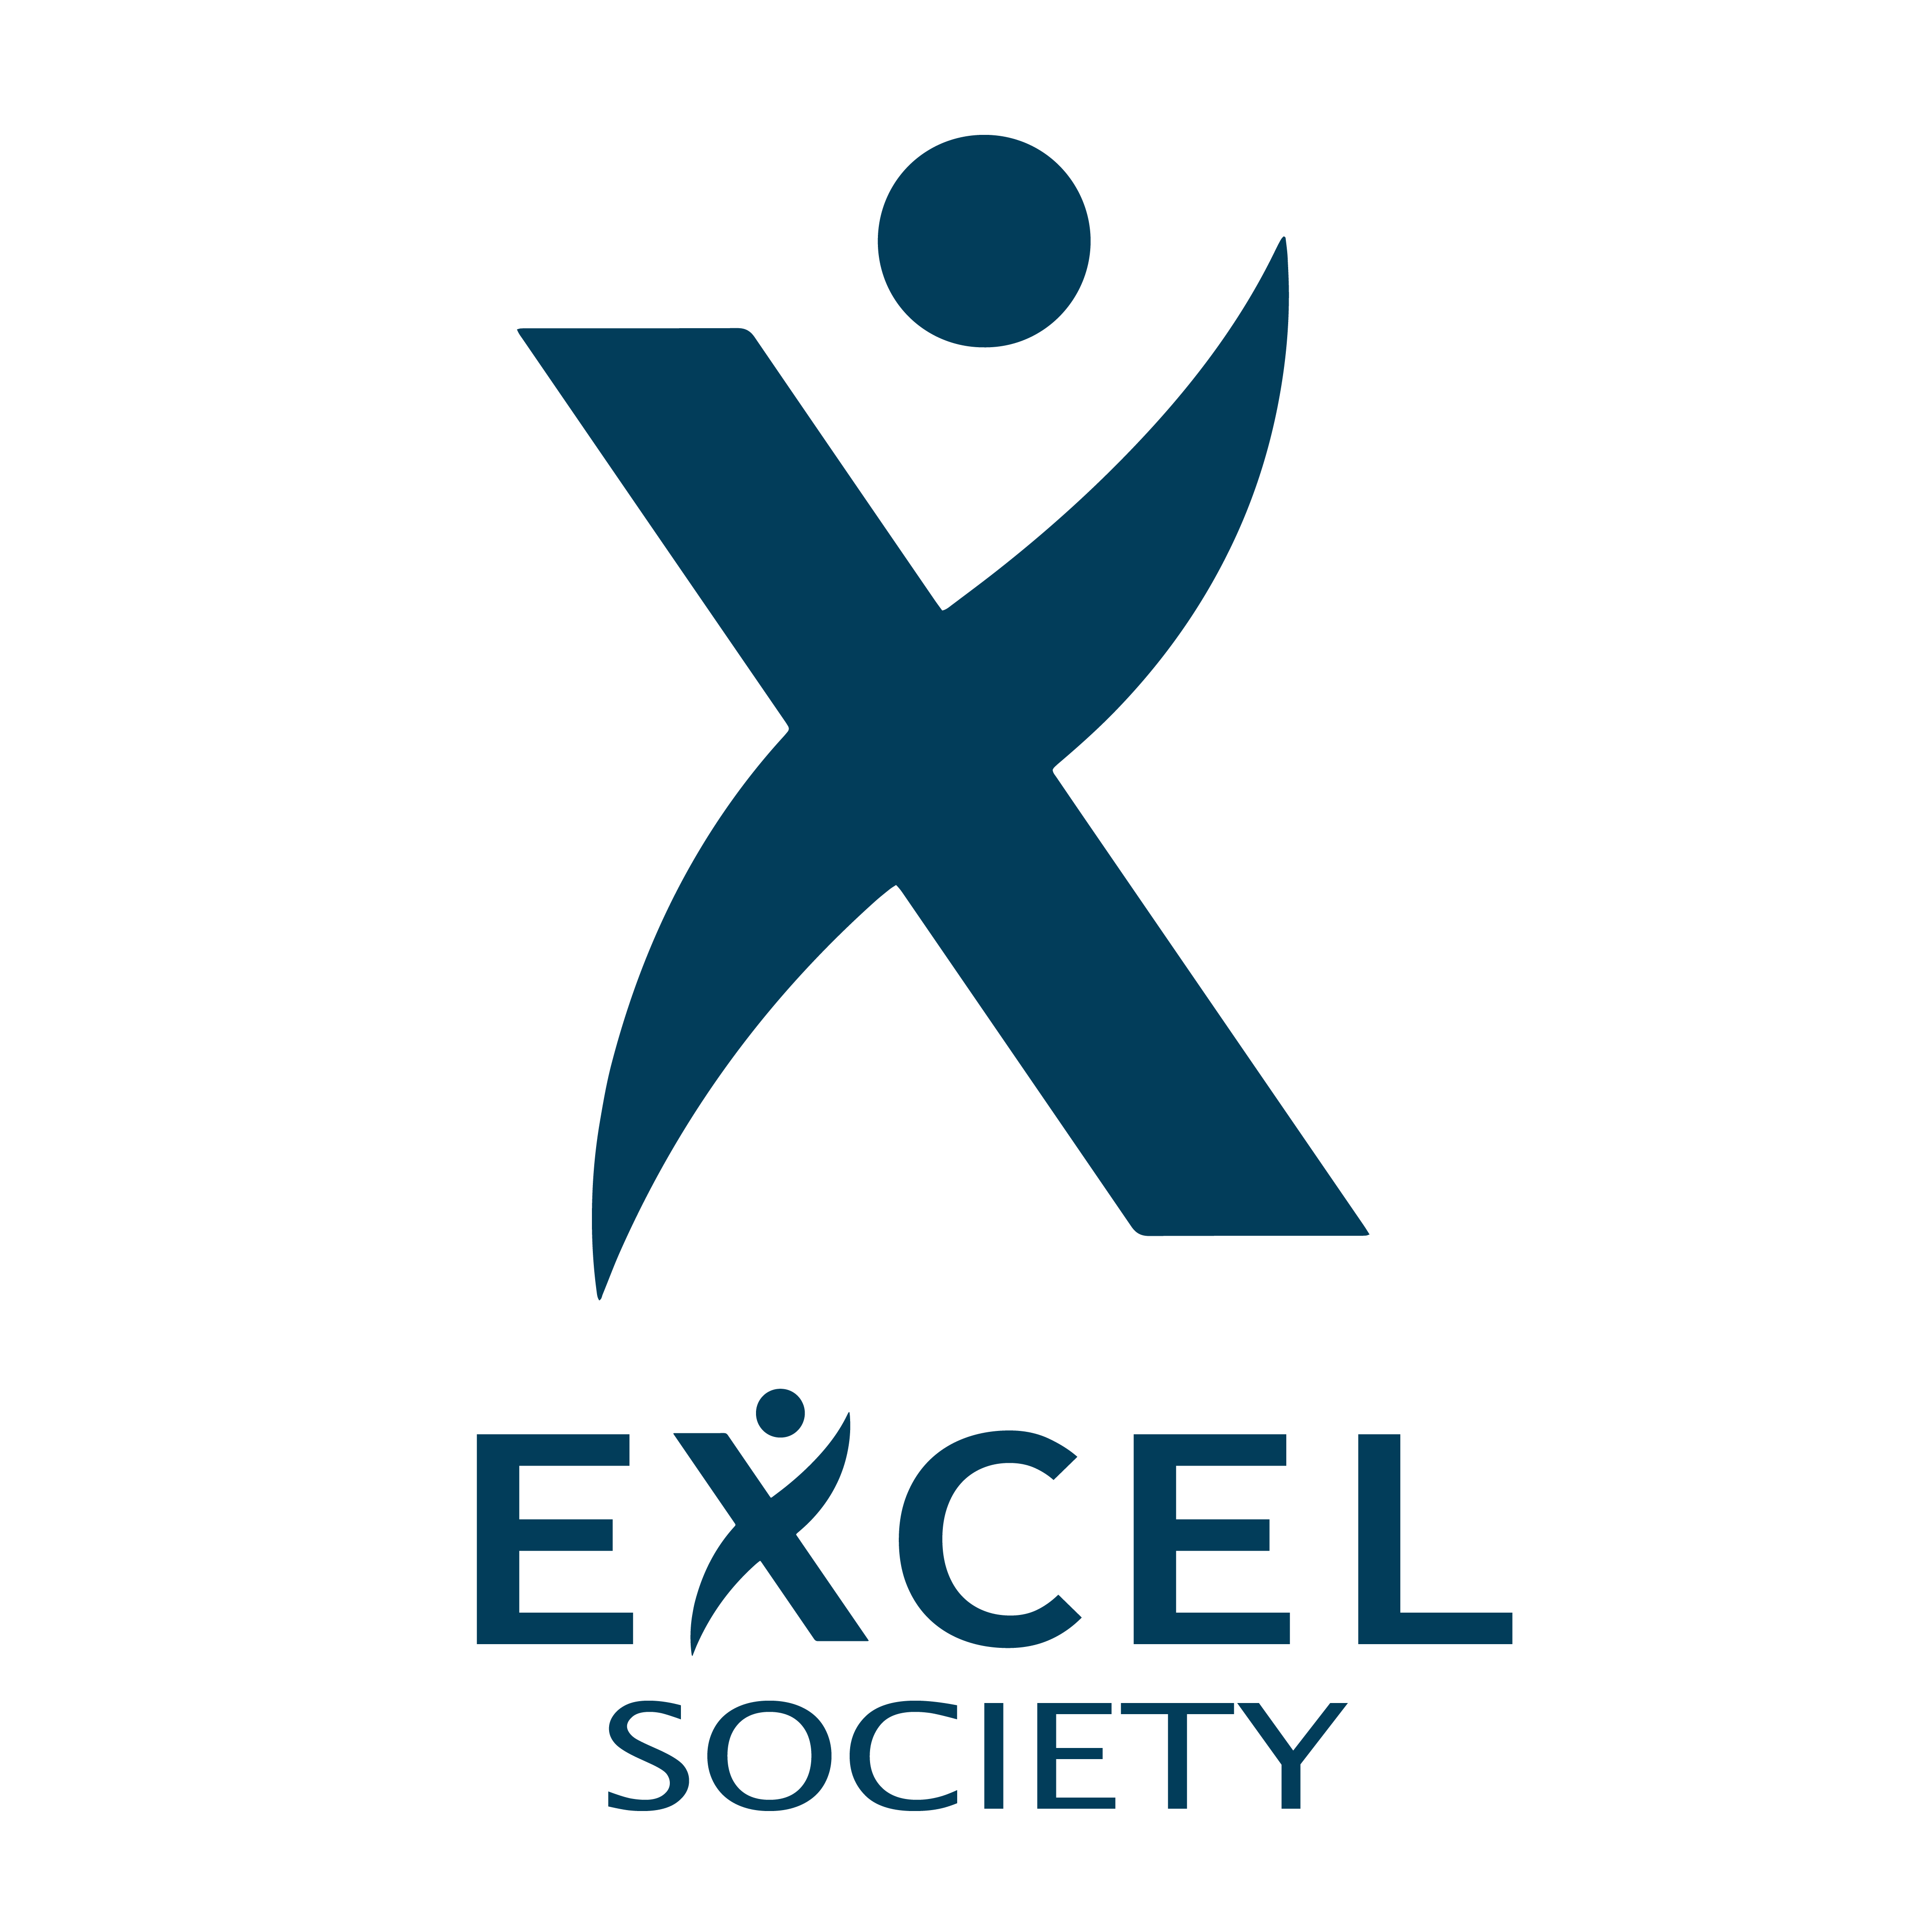 Excel Society